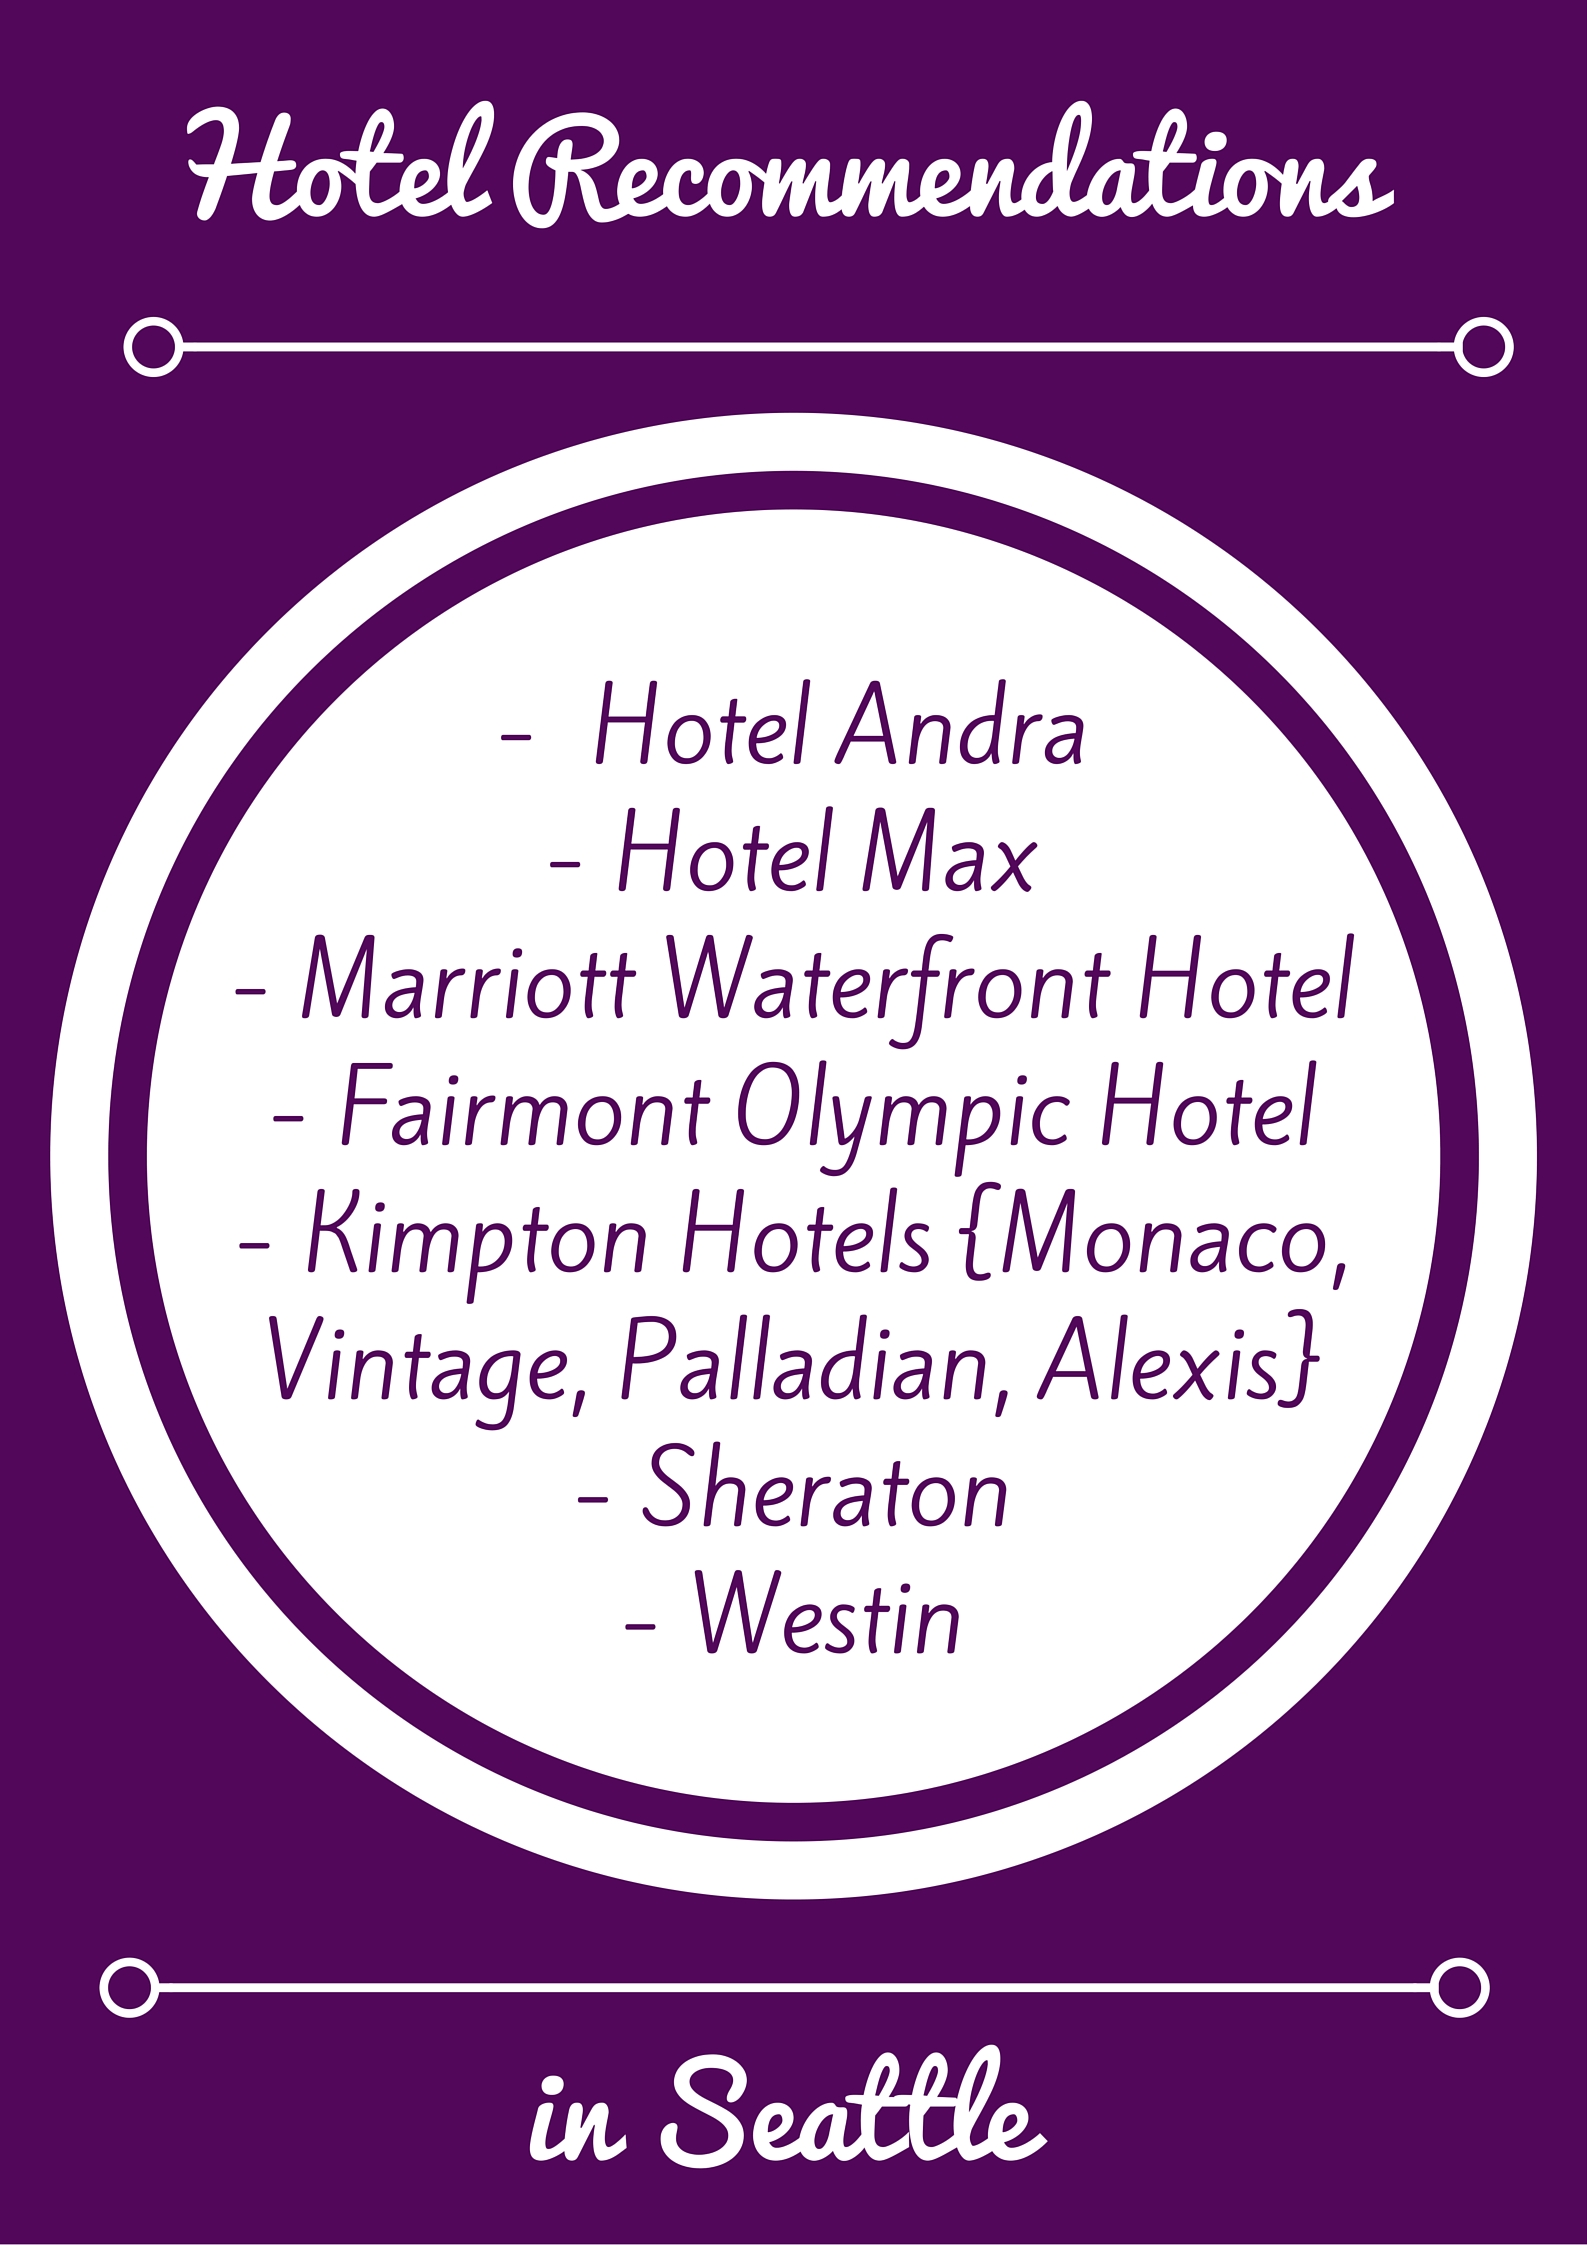 Room Block Hotel Recommendations in Seattle | Perfectly Posh Events